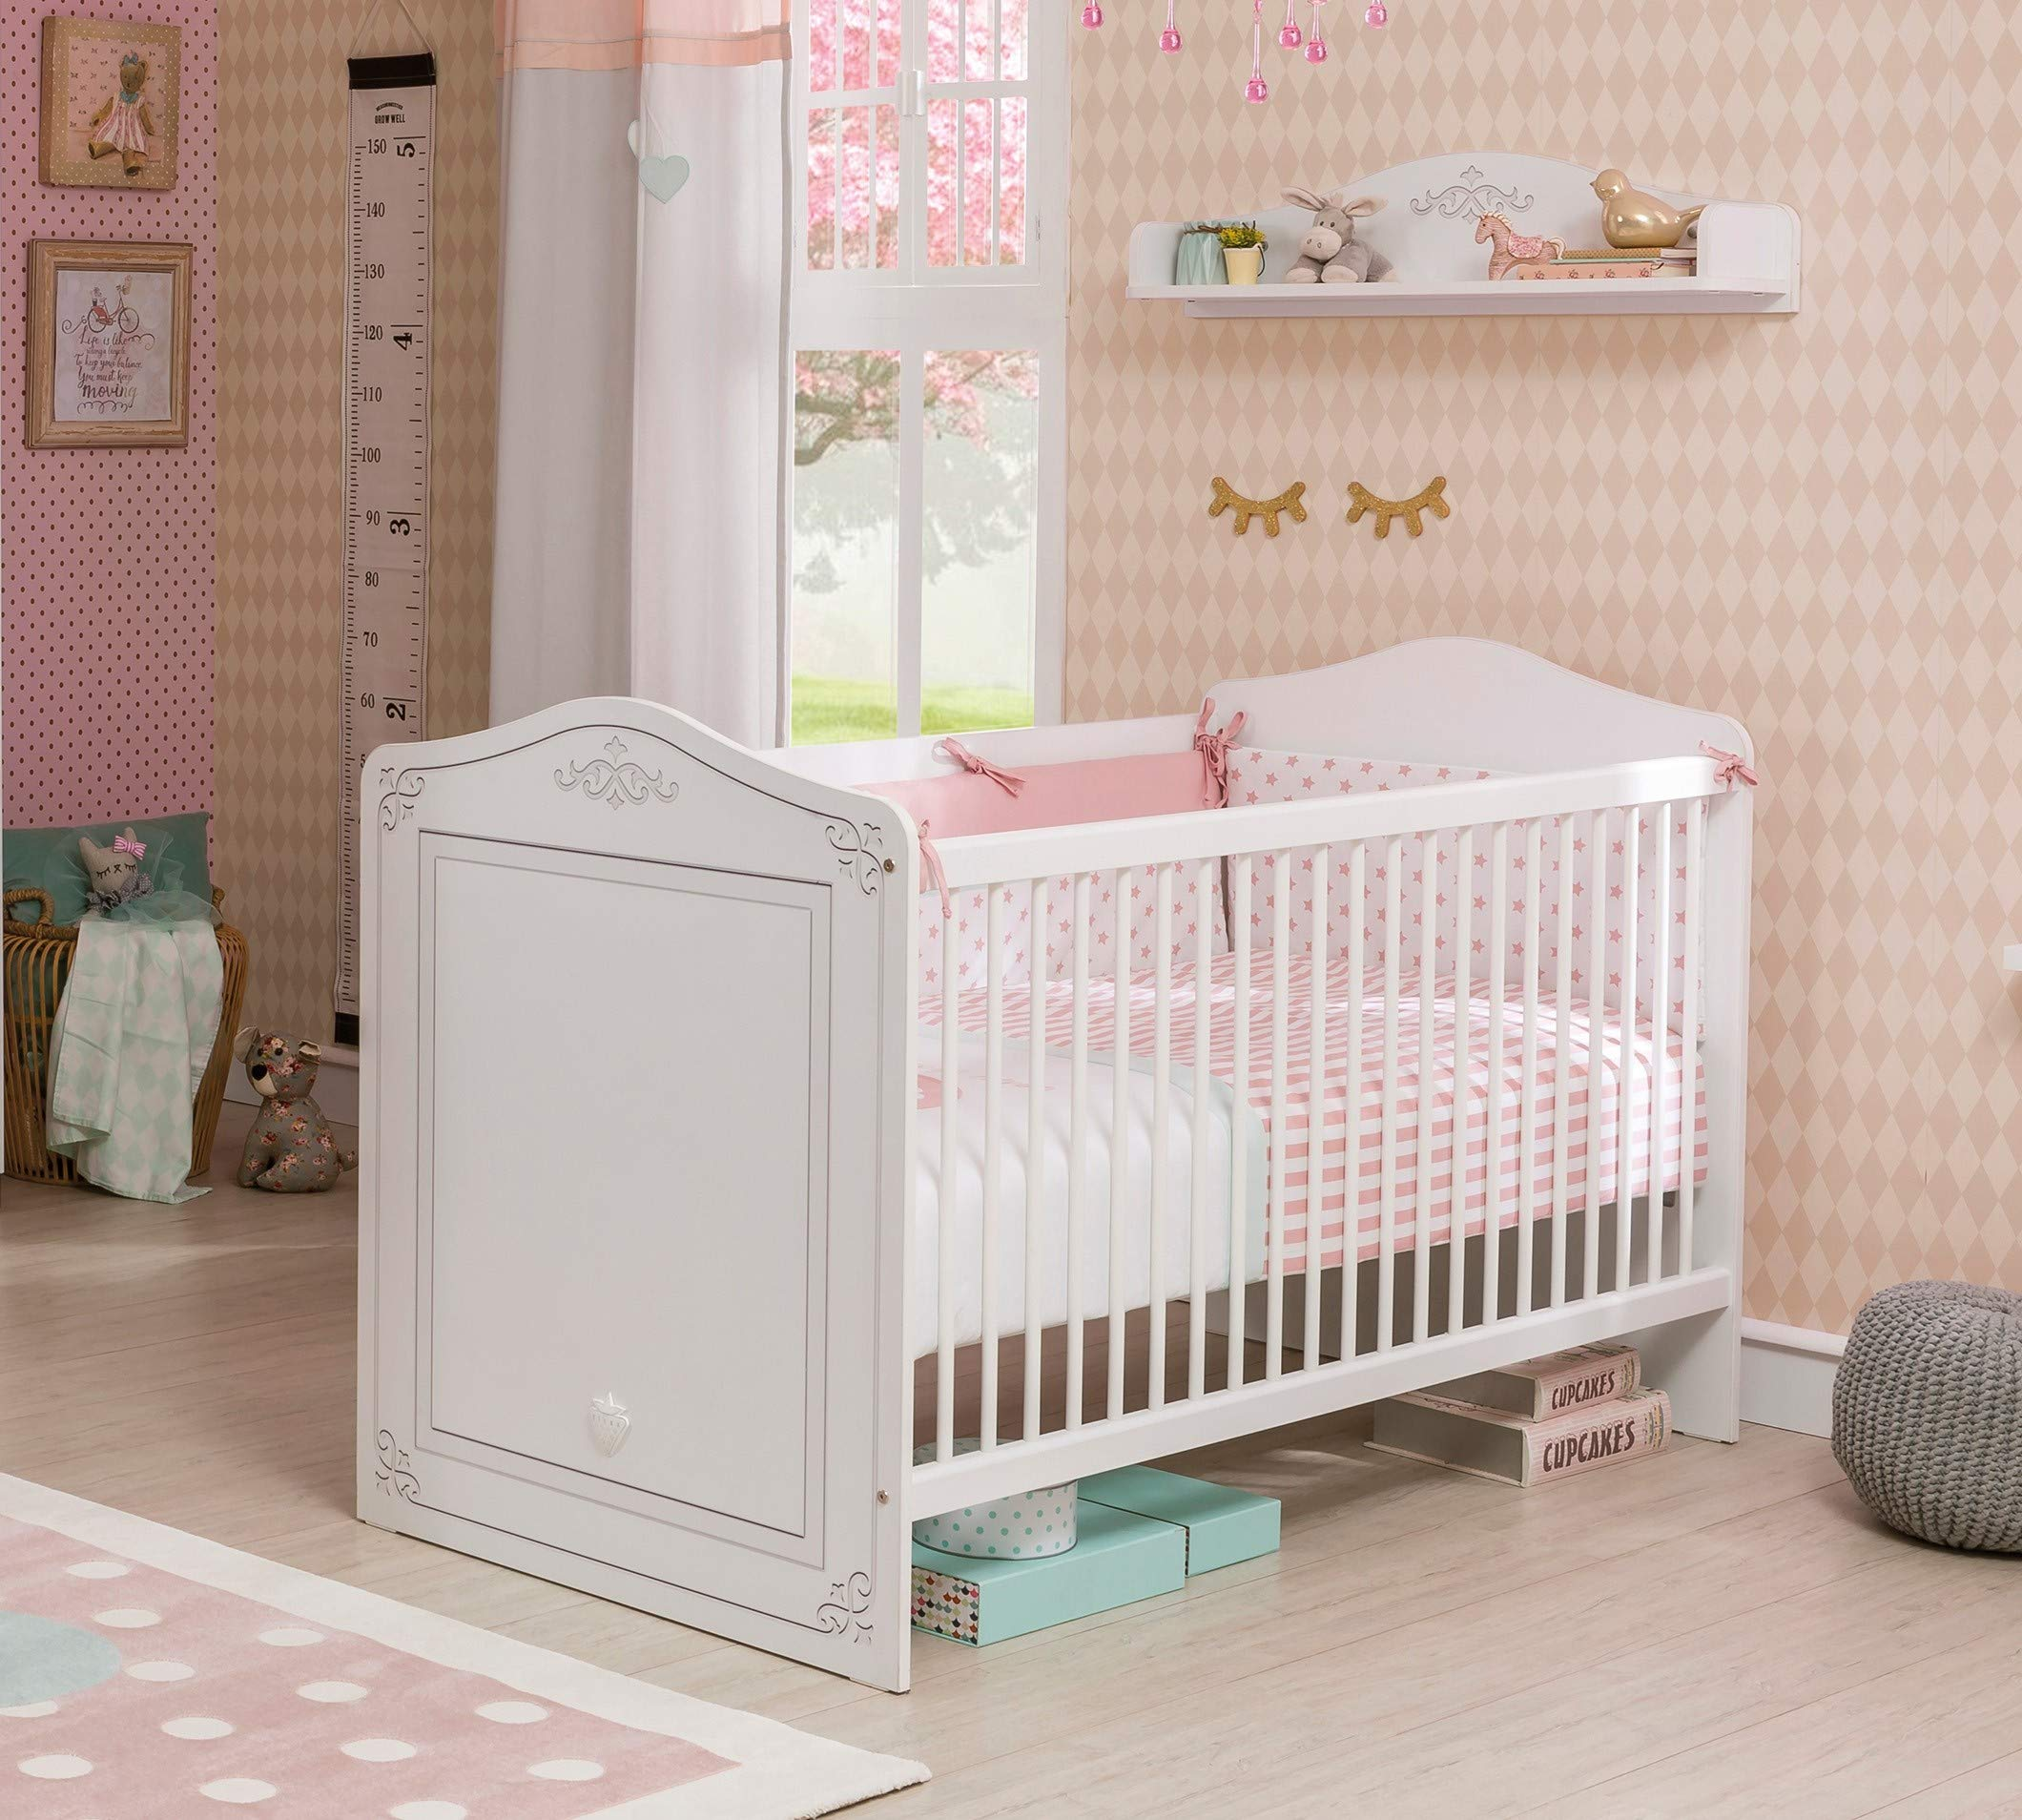 Dafnedesign.com - Cot early childhood bedroom for newborn or toddler - A baby cot with safety cage with poles - Includes a mattress - Width: 146 cm Height: 92 cm depth: 78 cm - [Series: Daphne-Classical] - (DF11) Dafnedesign 1 bed early childhood bedroom Baby bed Safety cage with poles 3